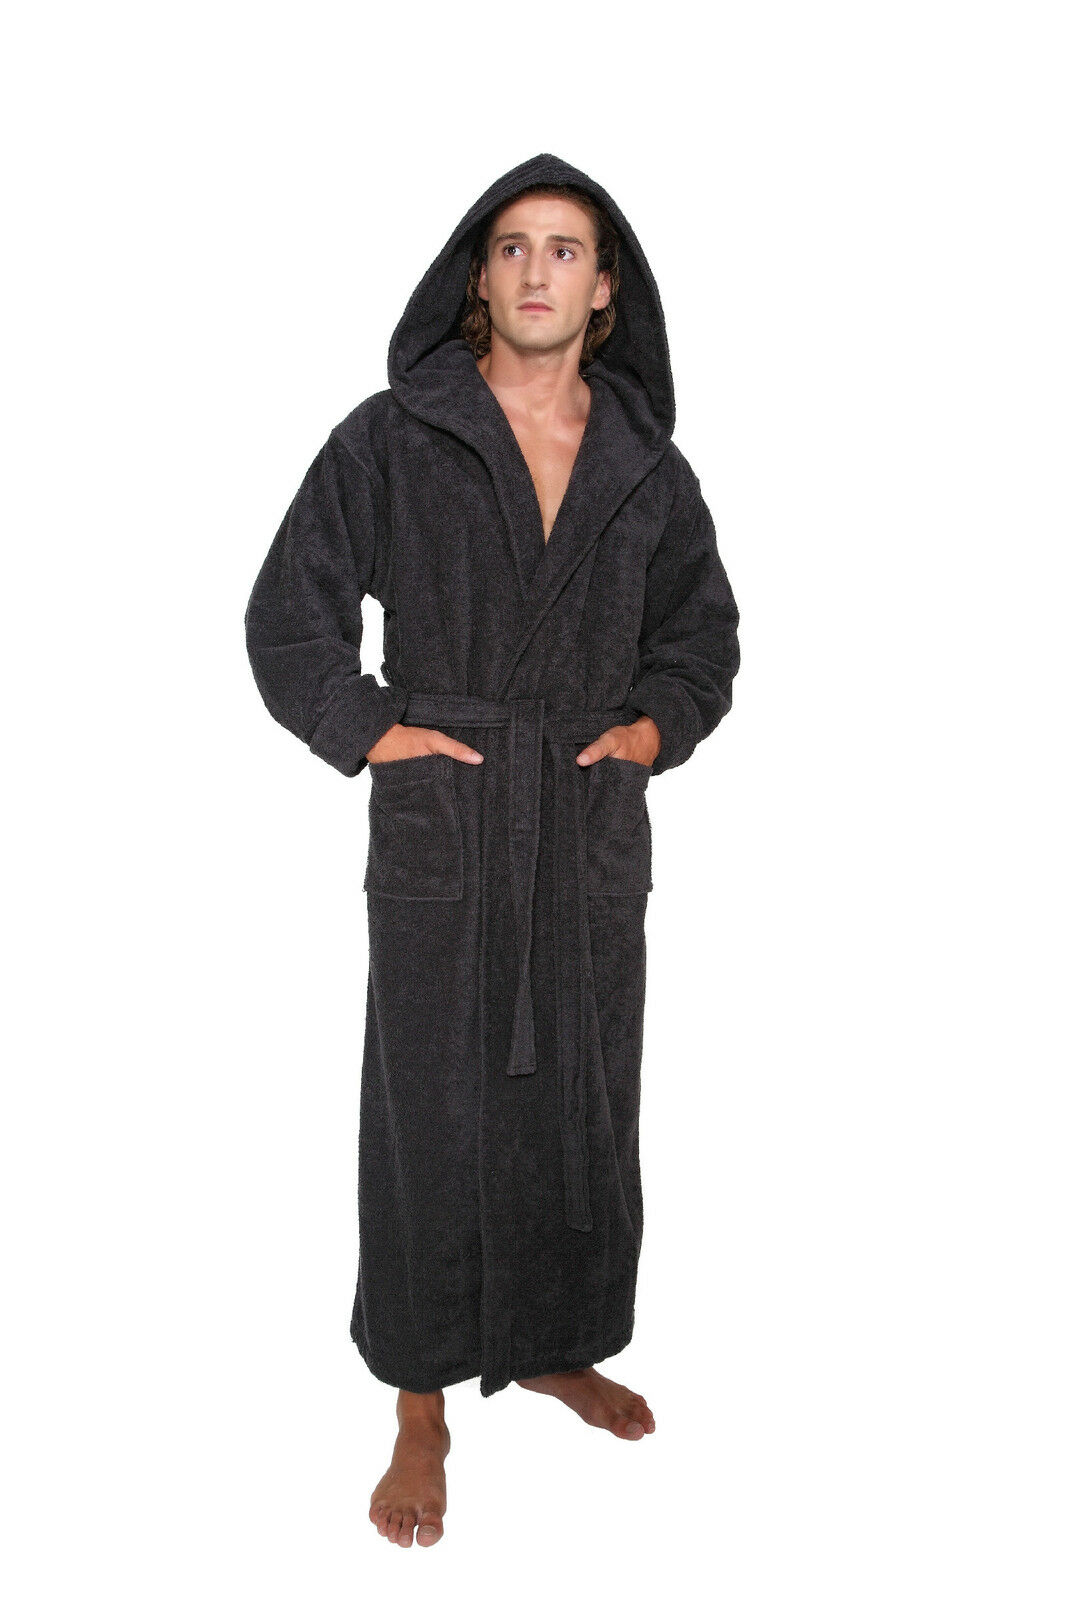 hooded bathrobe mens turkish cotton terry spa robe with hood picclick ca. Black Bedroom Furniture Sets. Home Design Ideas